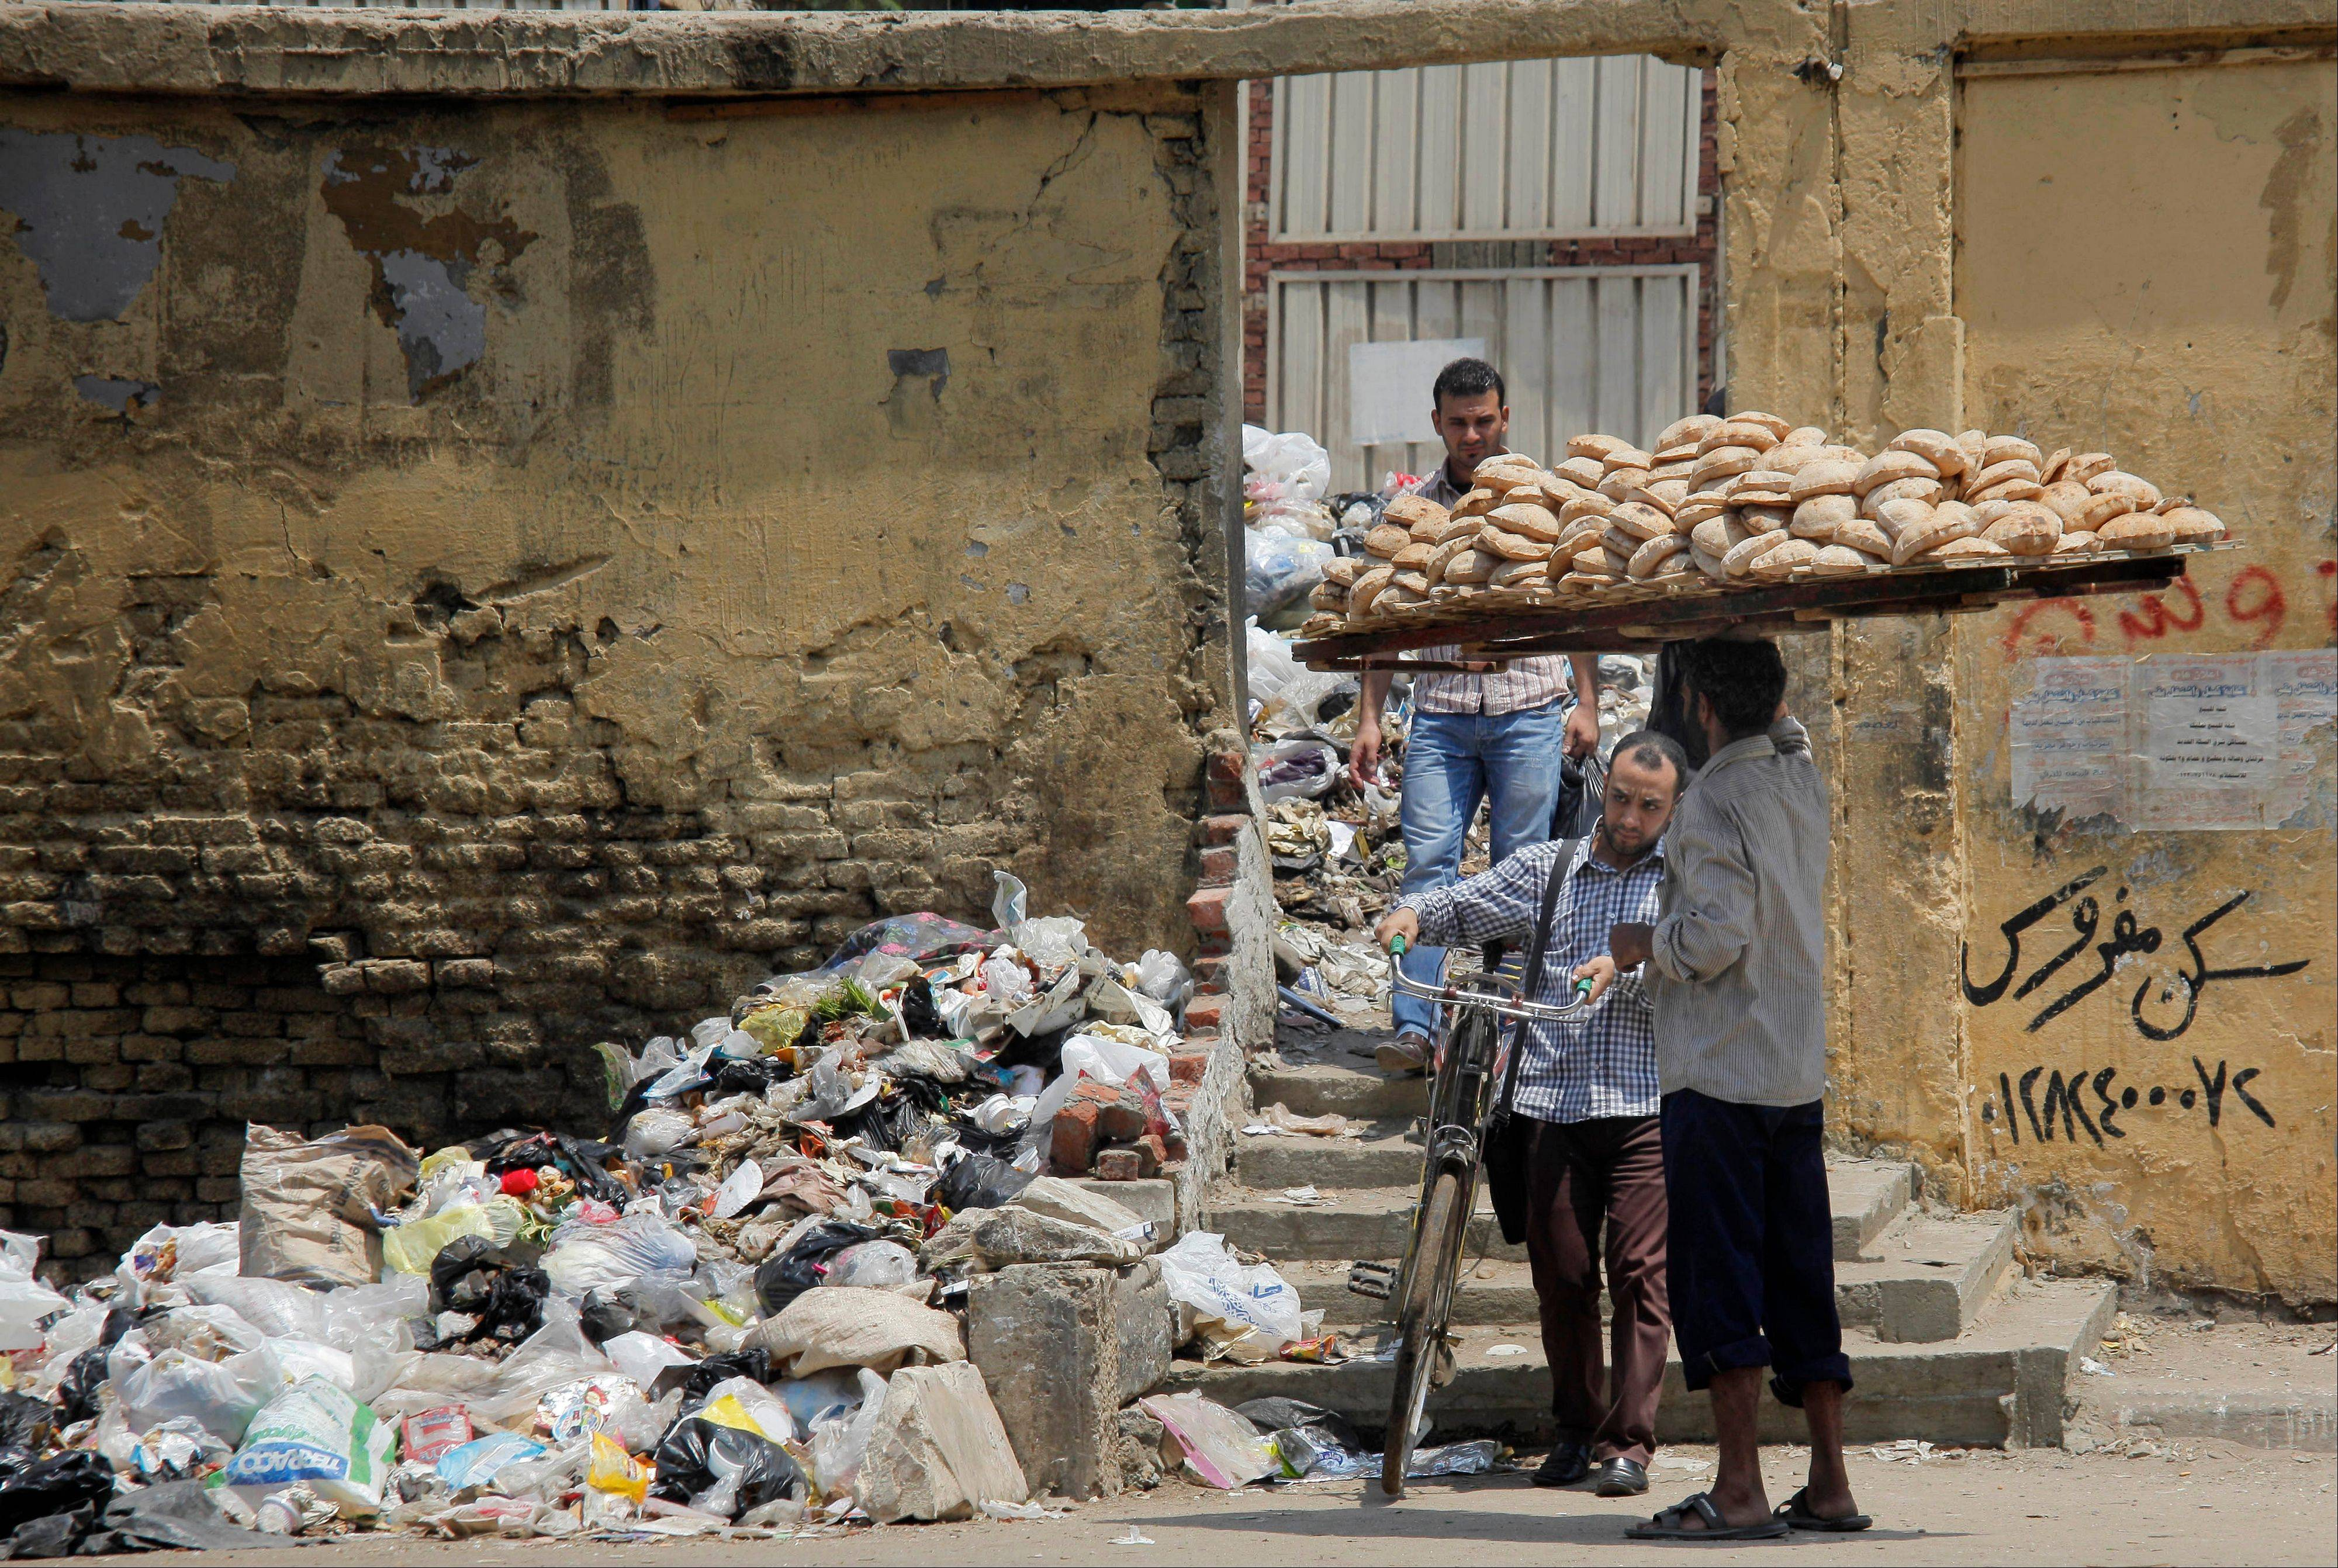 A bread vendor and others walk in front of loads of garbage on a Cairo street.